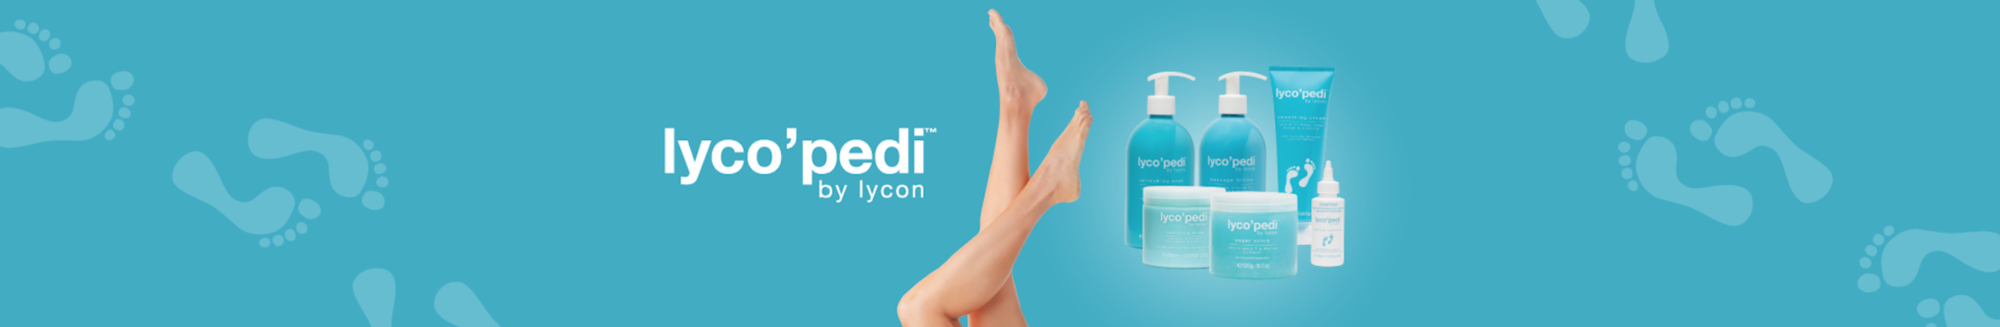 LYCON lyco'pedi (Pedicuresysteem)